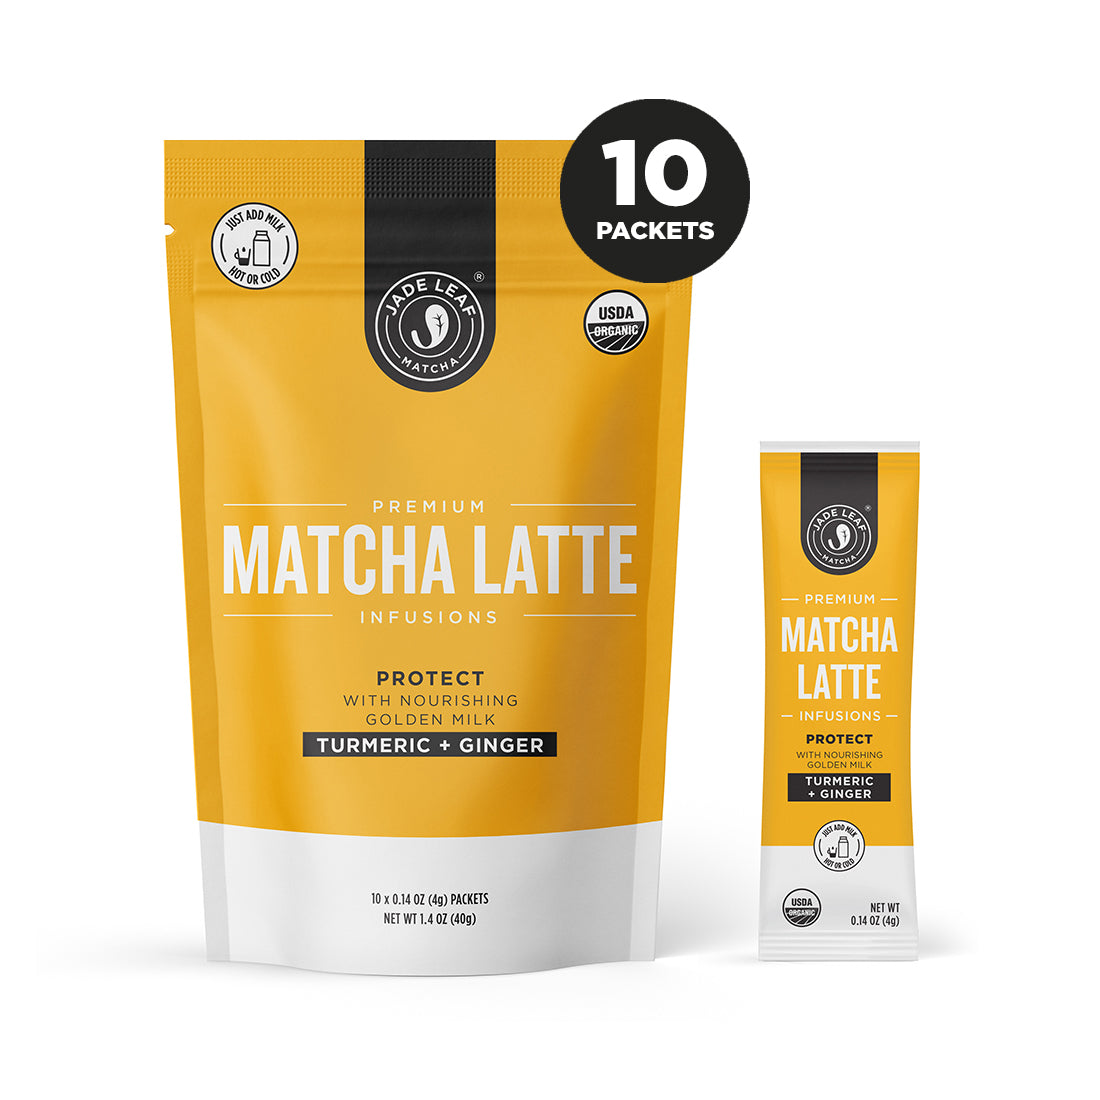 Matcha Latte Infusions - PROTECT - 10 PACKETS - Hero